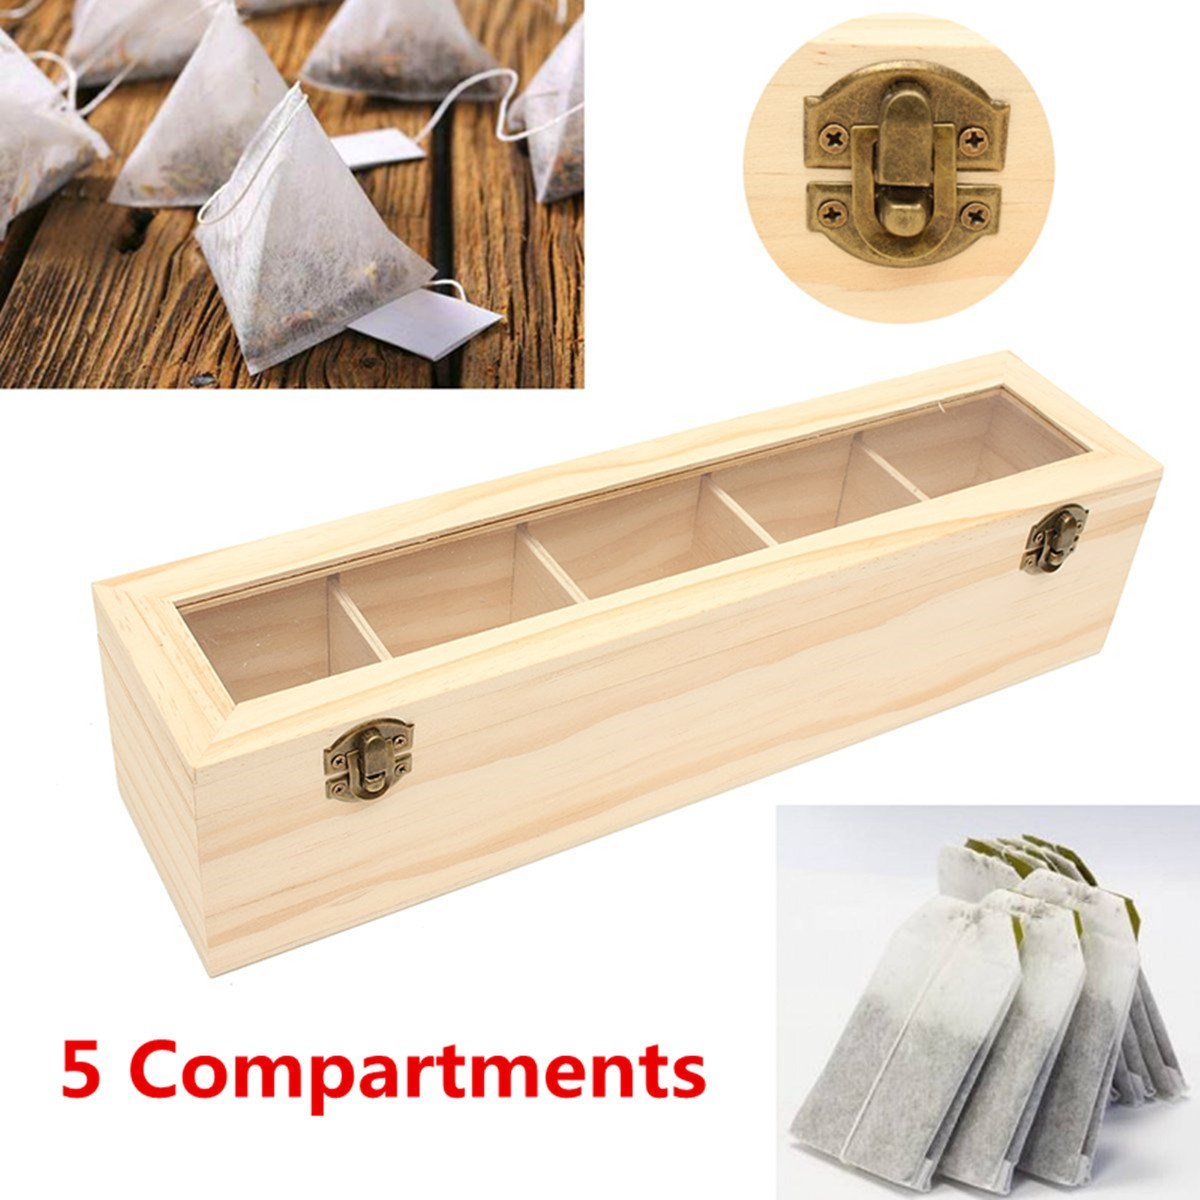 5 Compartments Wooden Tea Box Antique Chest Tin Caddy Holder Glass Lid Pine Wood Kitchen Dry Food Storage Container Organizer